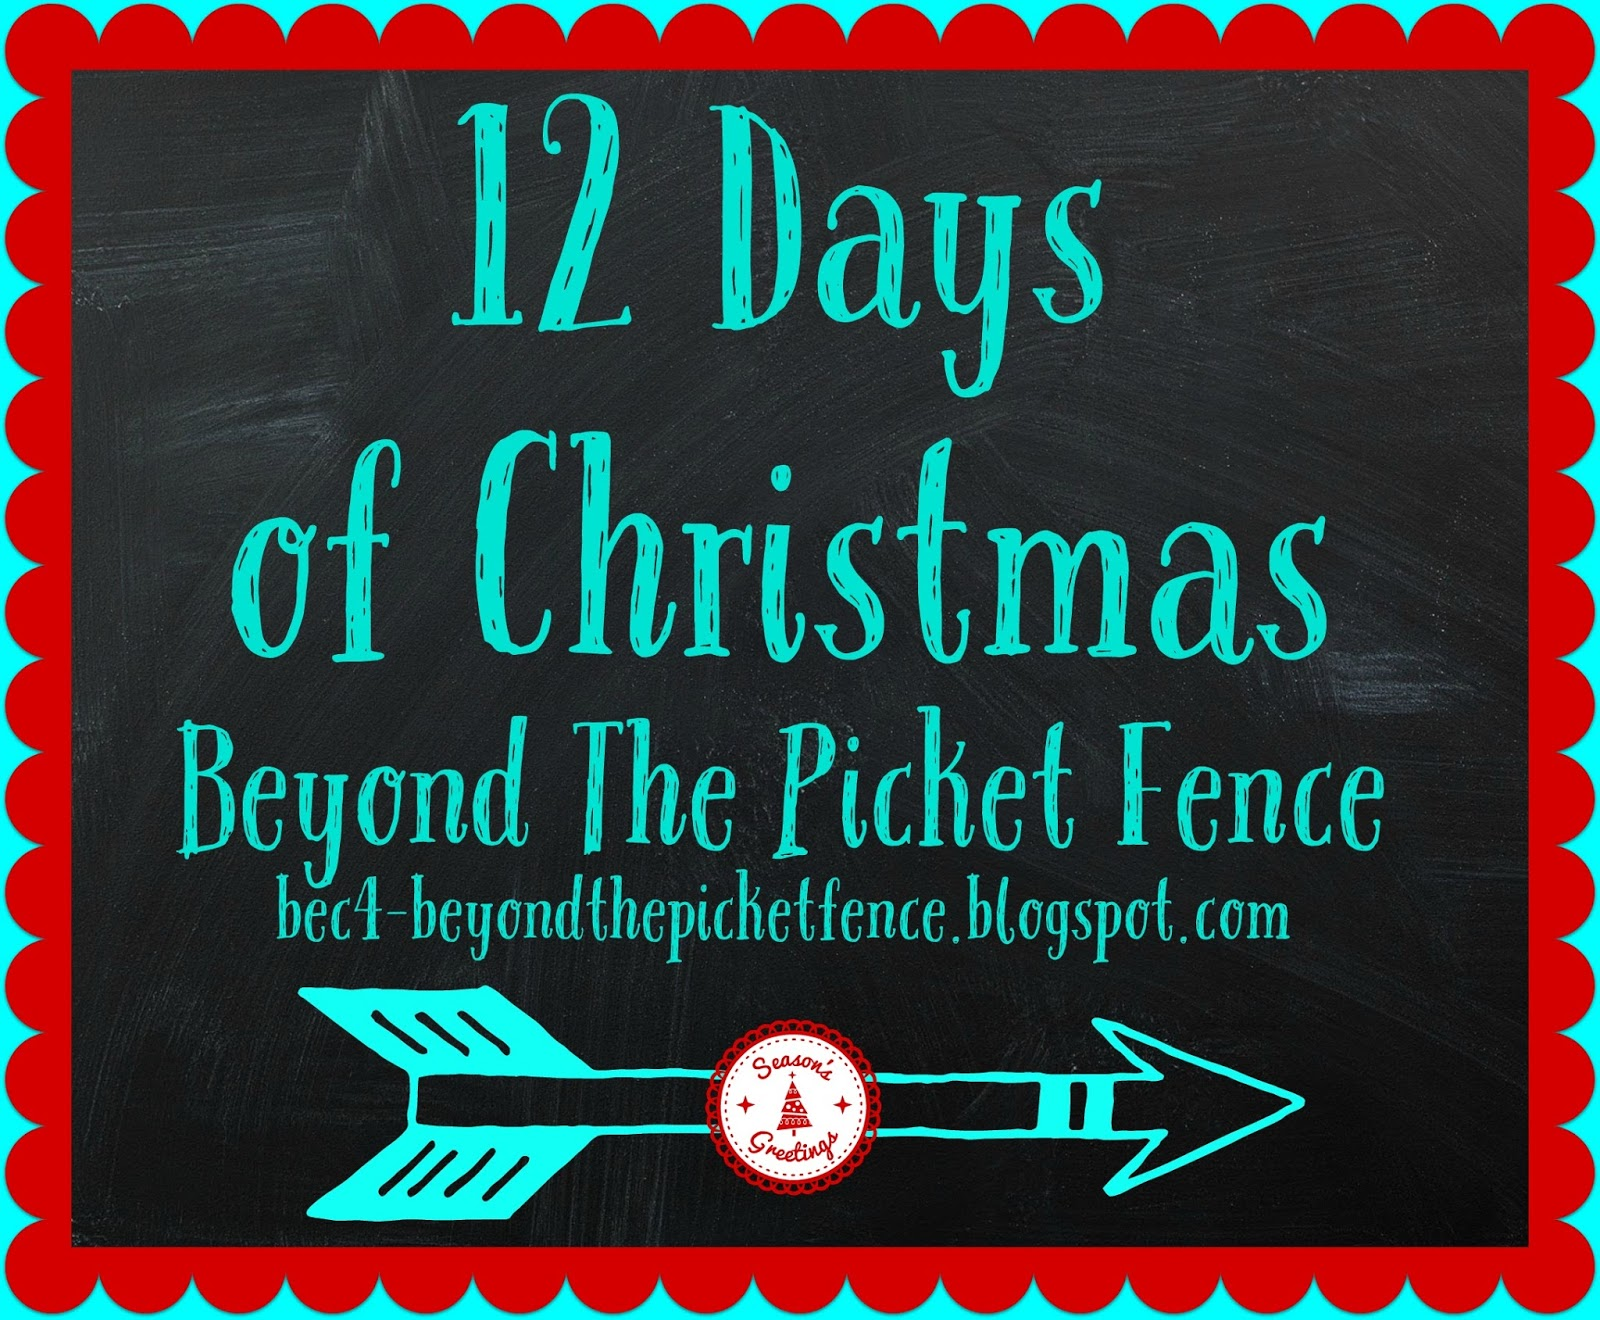 Beyond The Picket Fence: 12 Days of Christmas, Day 12, Last Minute Gift